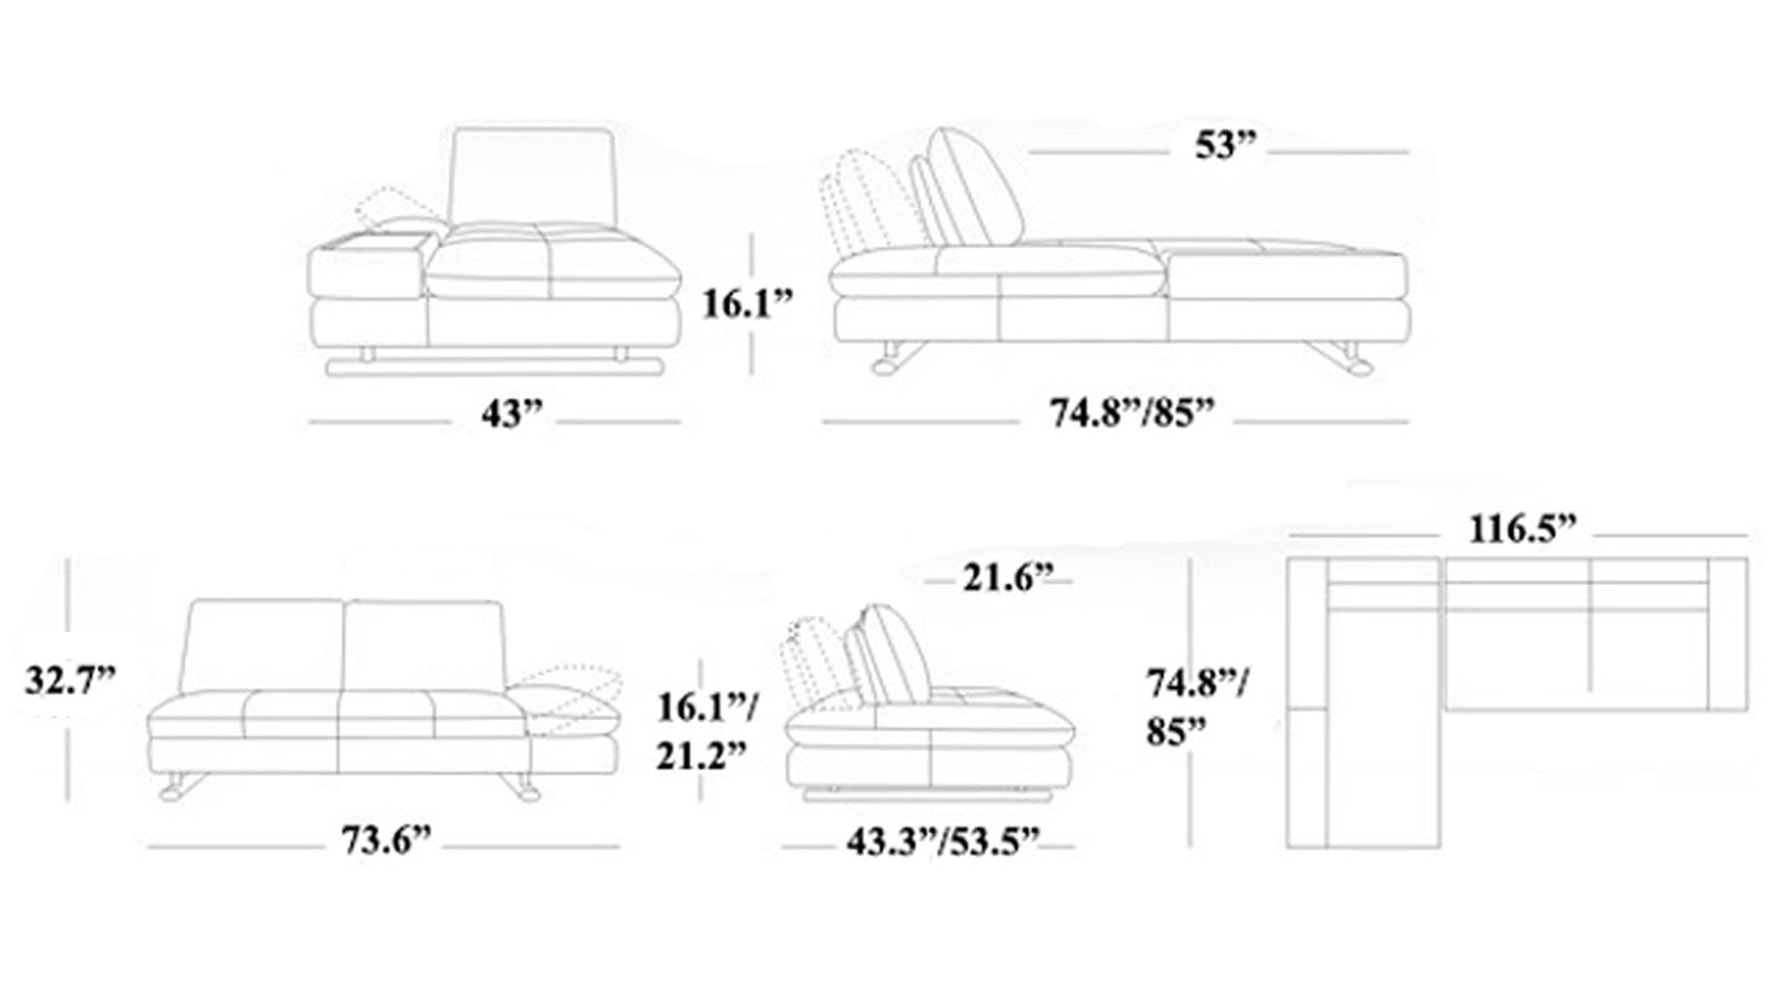 2 Seater Sofa Dimensions In Feet